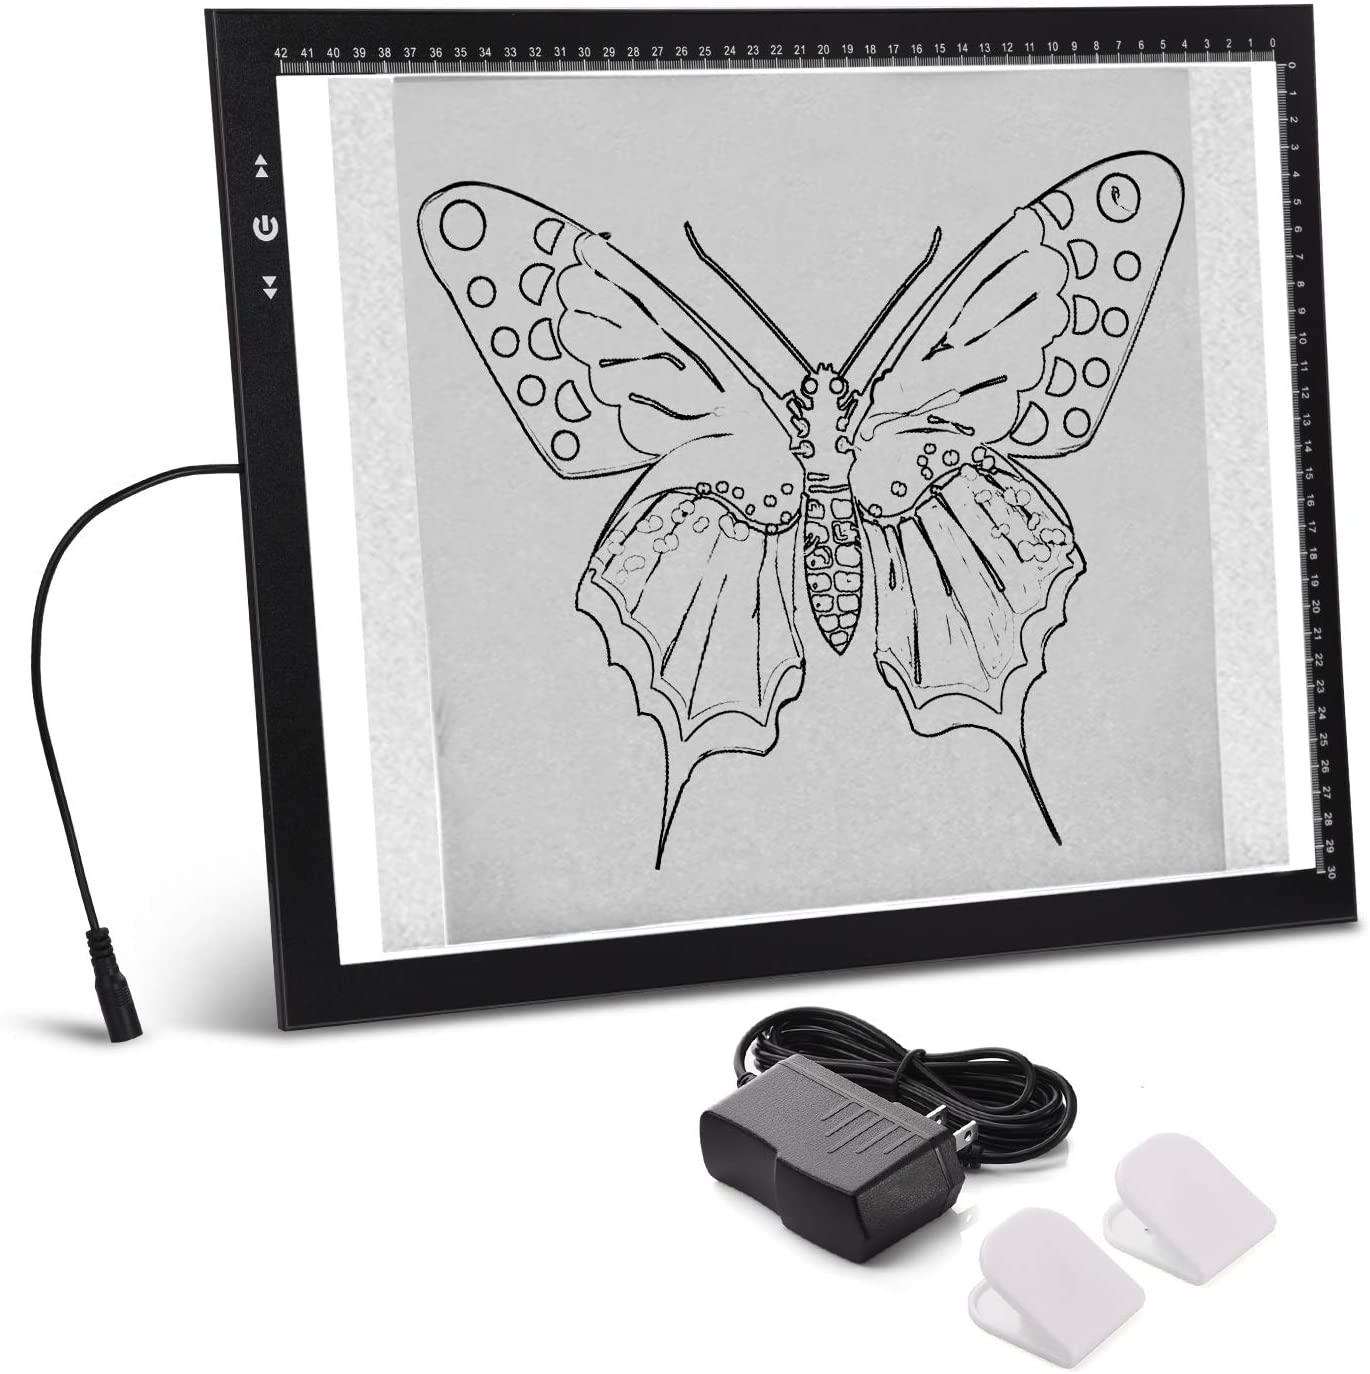 A3 Light online shopping Max 62% OFF Box Pad Aluminium Frame Super Touch 11W Dimmer Br